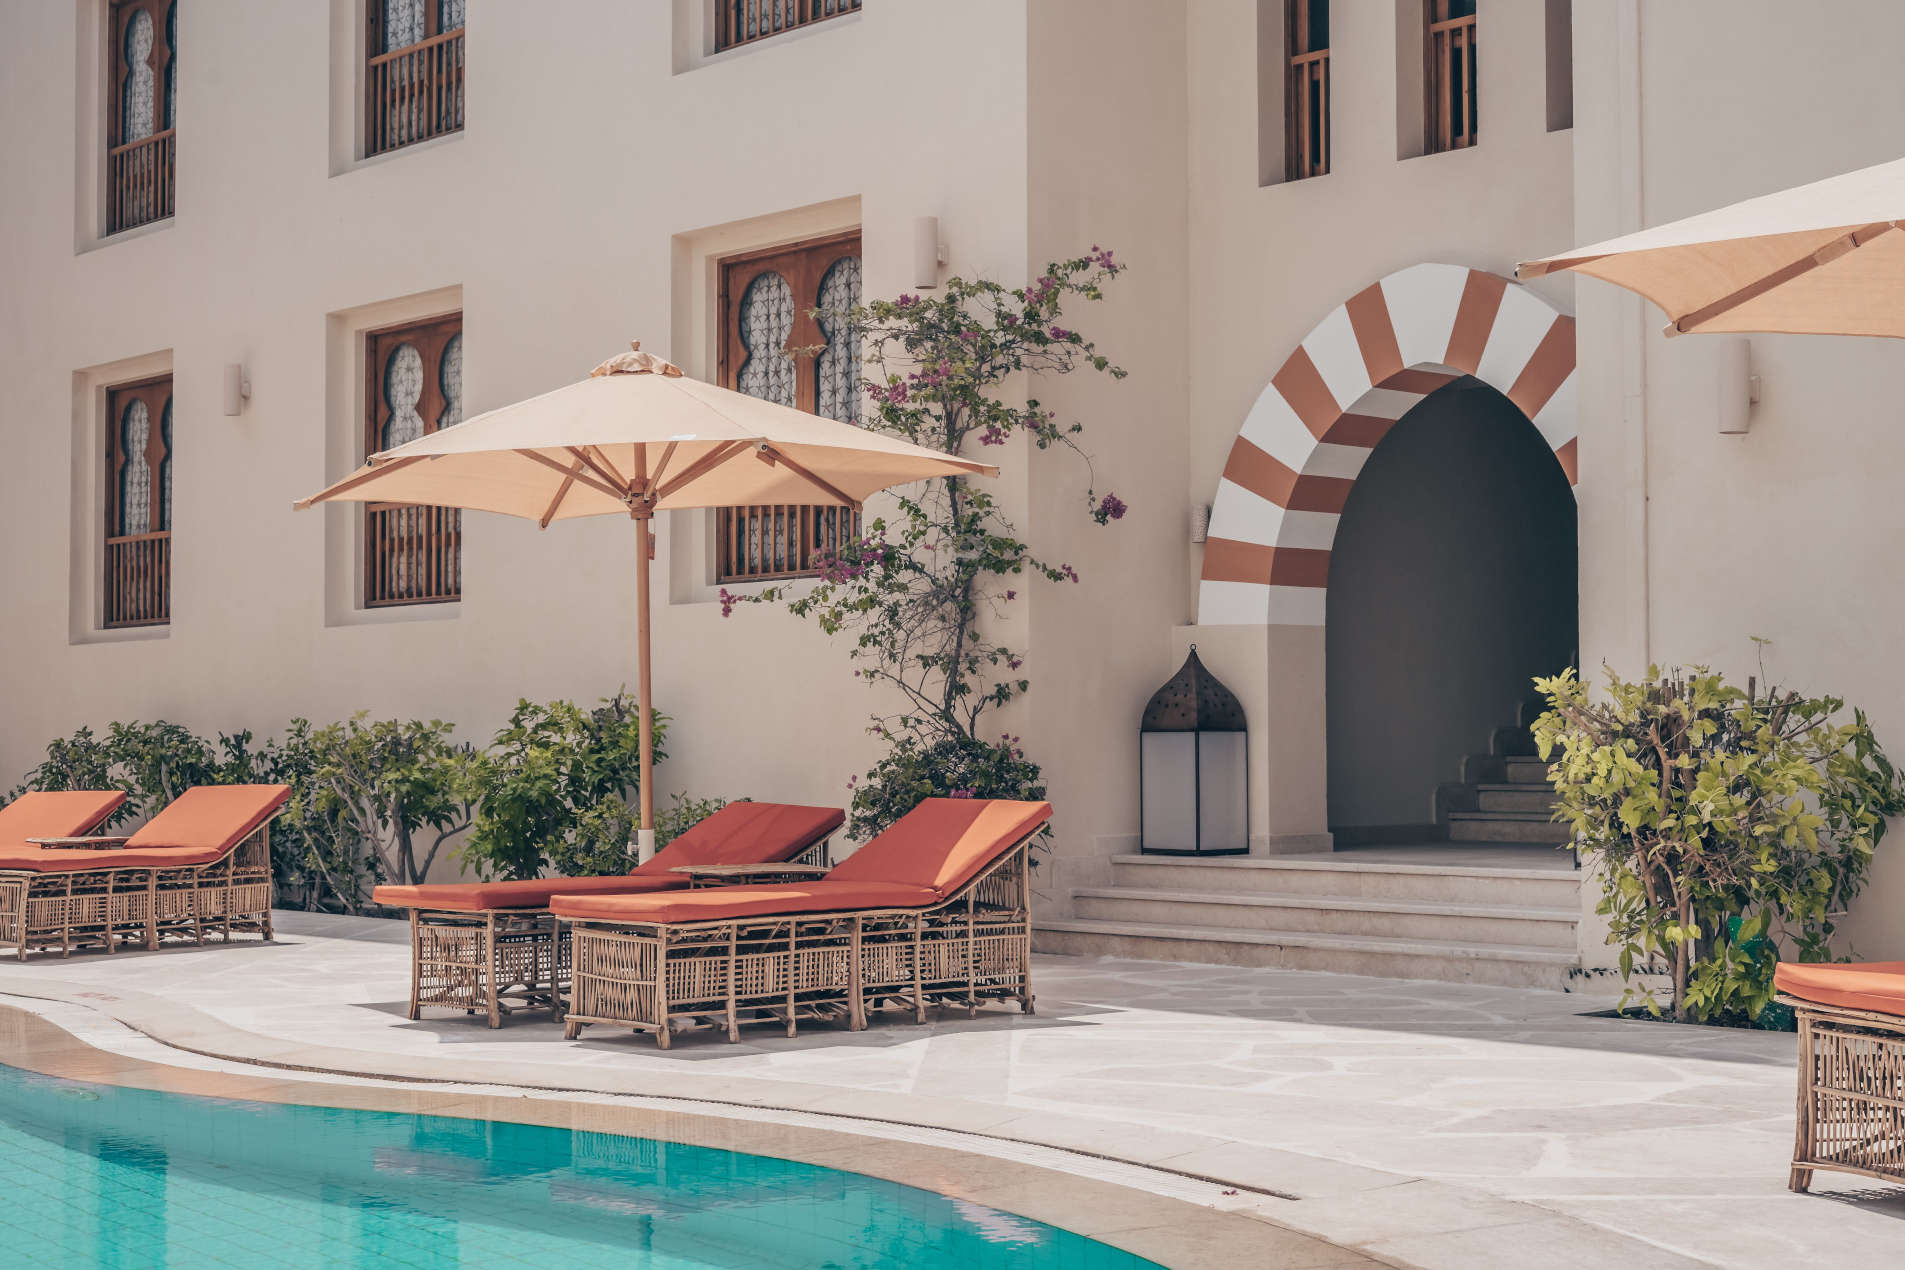 The swimming pool, chaise lounges and Umbrellas of Ali Pasha The s star Hotel in Marina Abu Tig El Gouna Red Sea Egypt